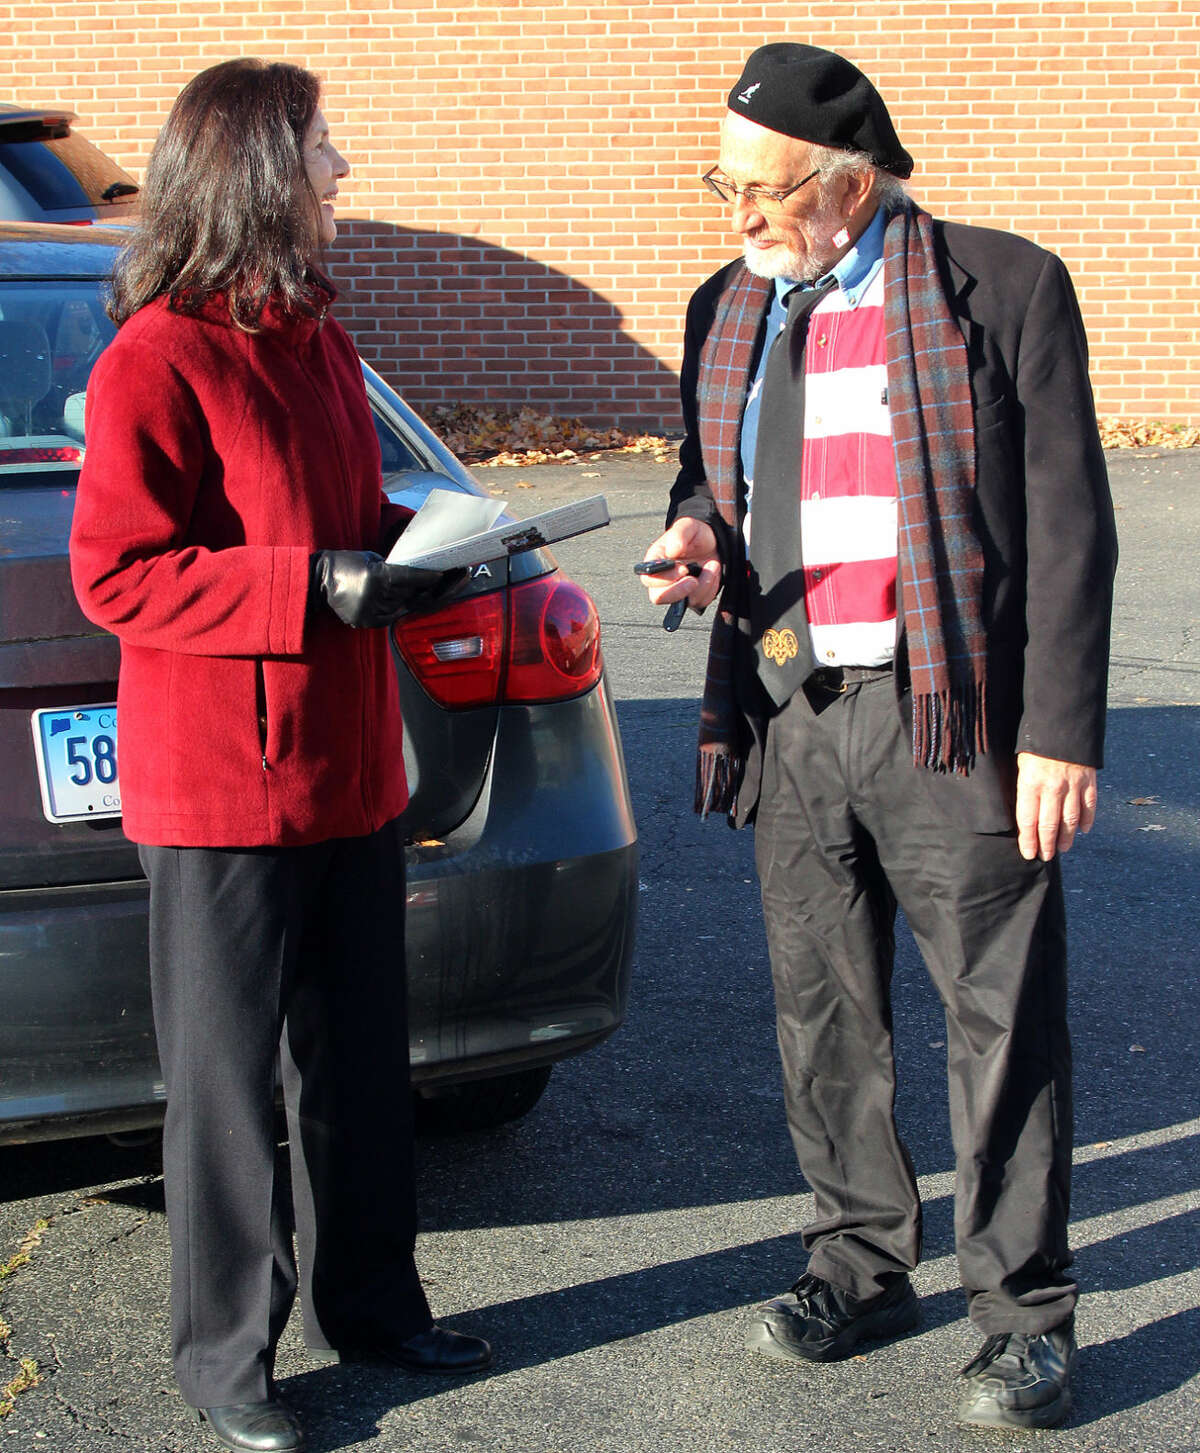 Hour photo/Chris Bosak Democratic candidate for First Taxing District Treasurer Elsa Peterson Obuchowski gets an early voter turnout update from Assistant Democratic Registrar Bob Sodaro on Tuesday morning at St. Mary's Community Hall on West Avenue in Norwalk.